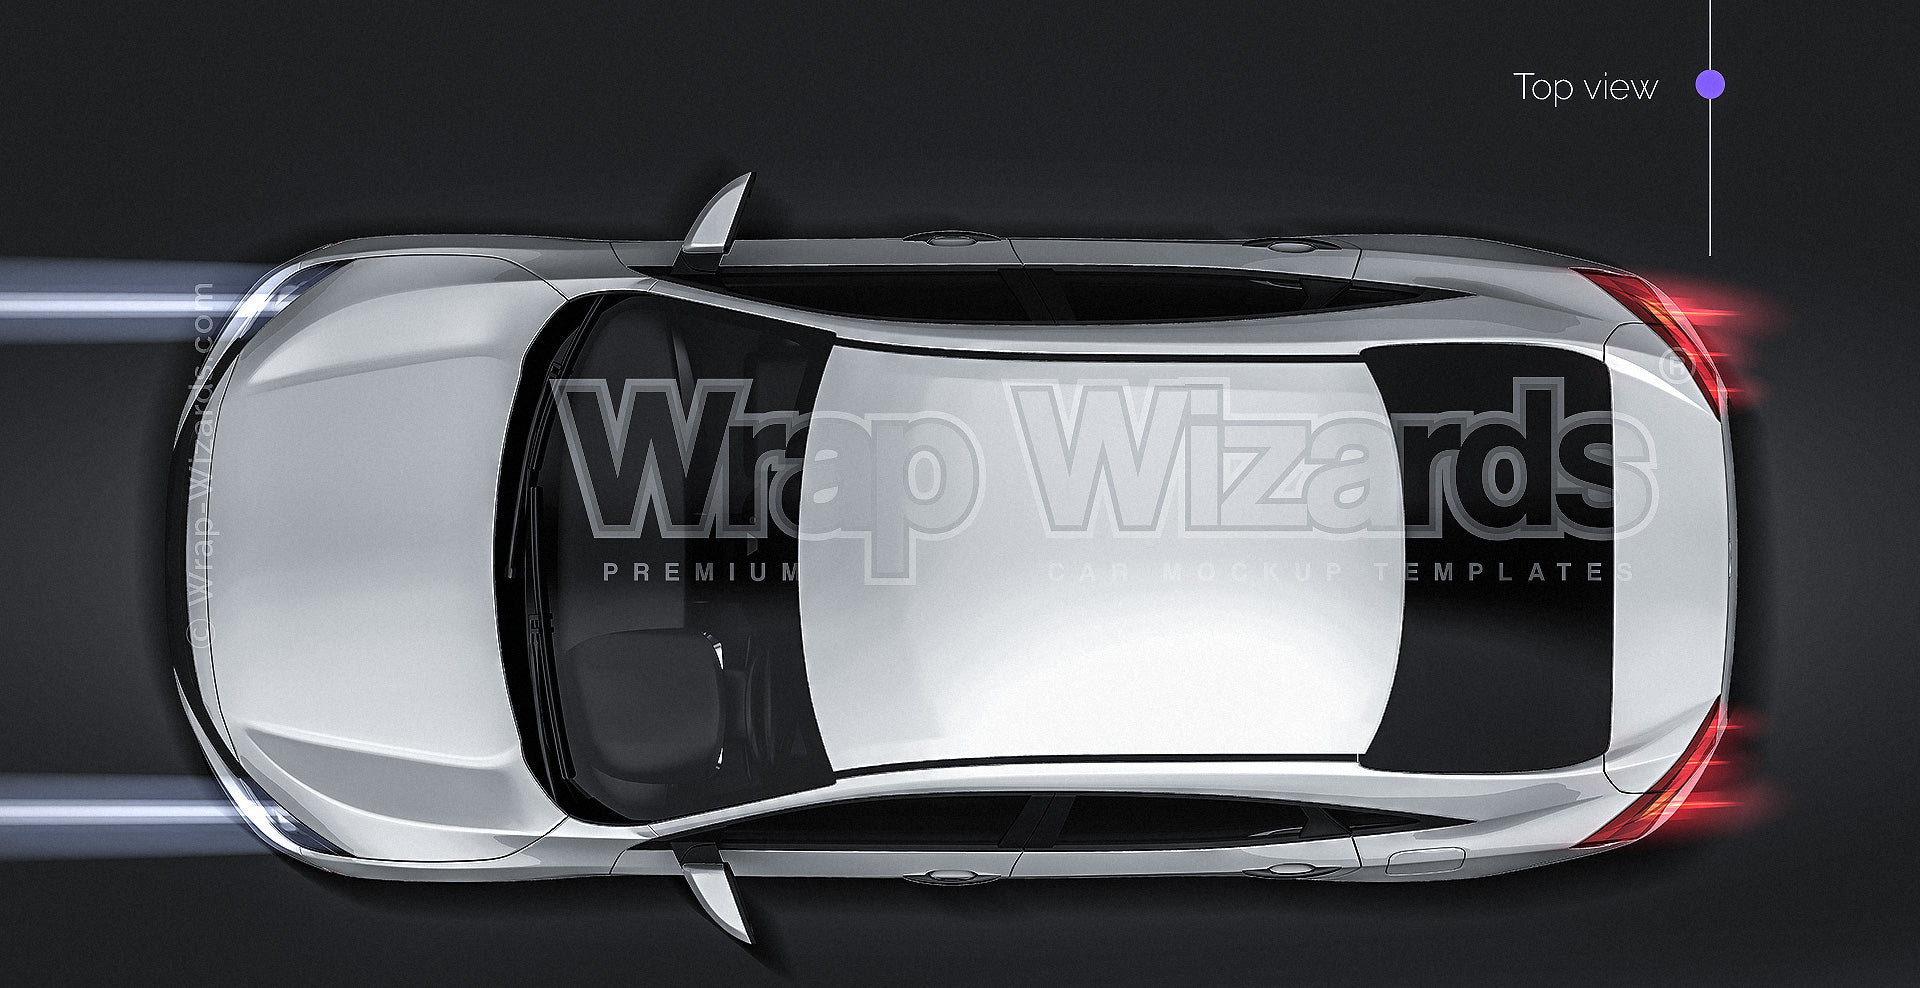 Honda Civic Sedan LX 2016 glossy finish - all sides Car Mockup Template.psd